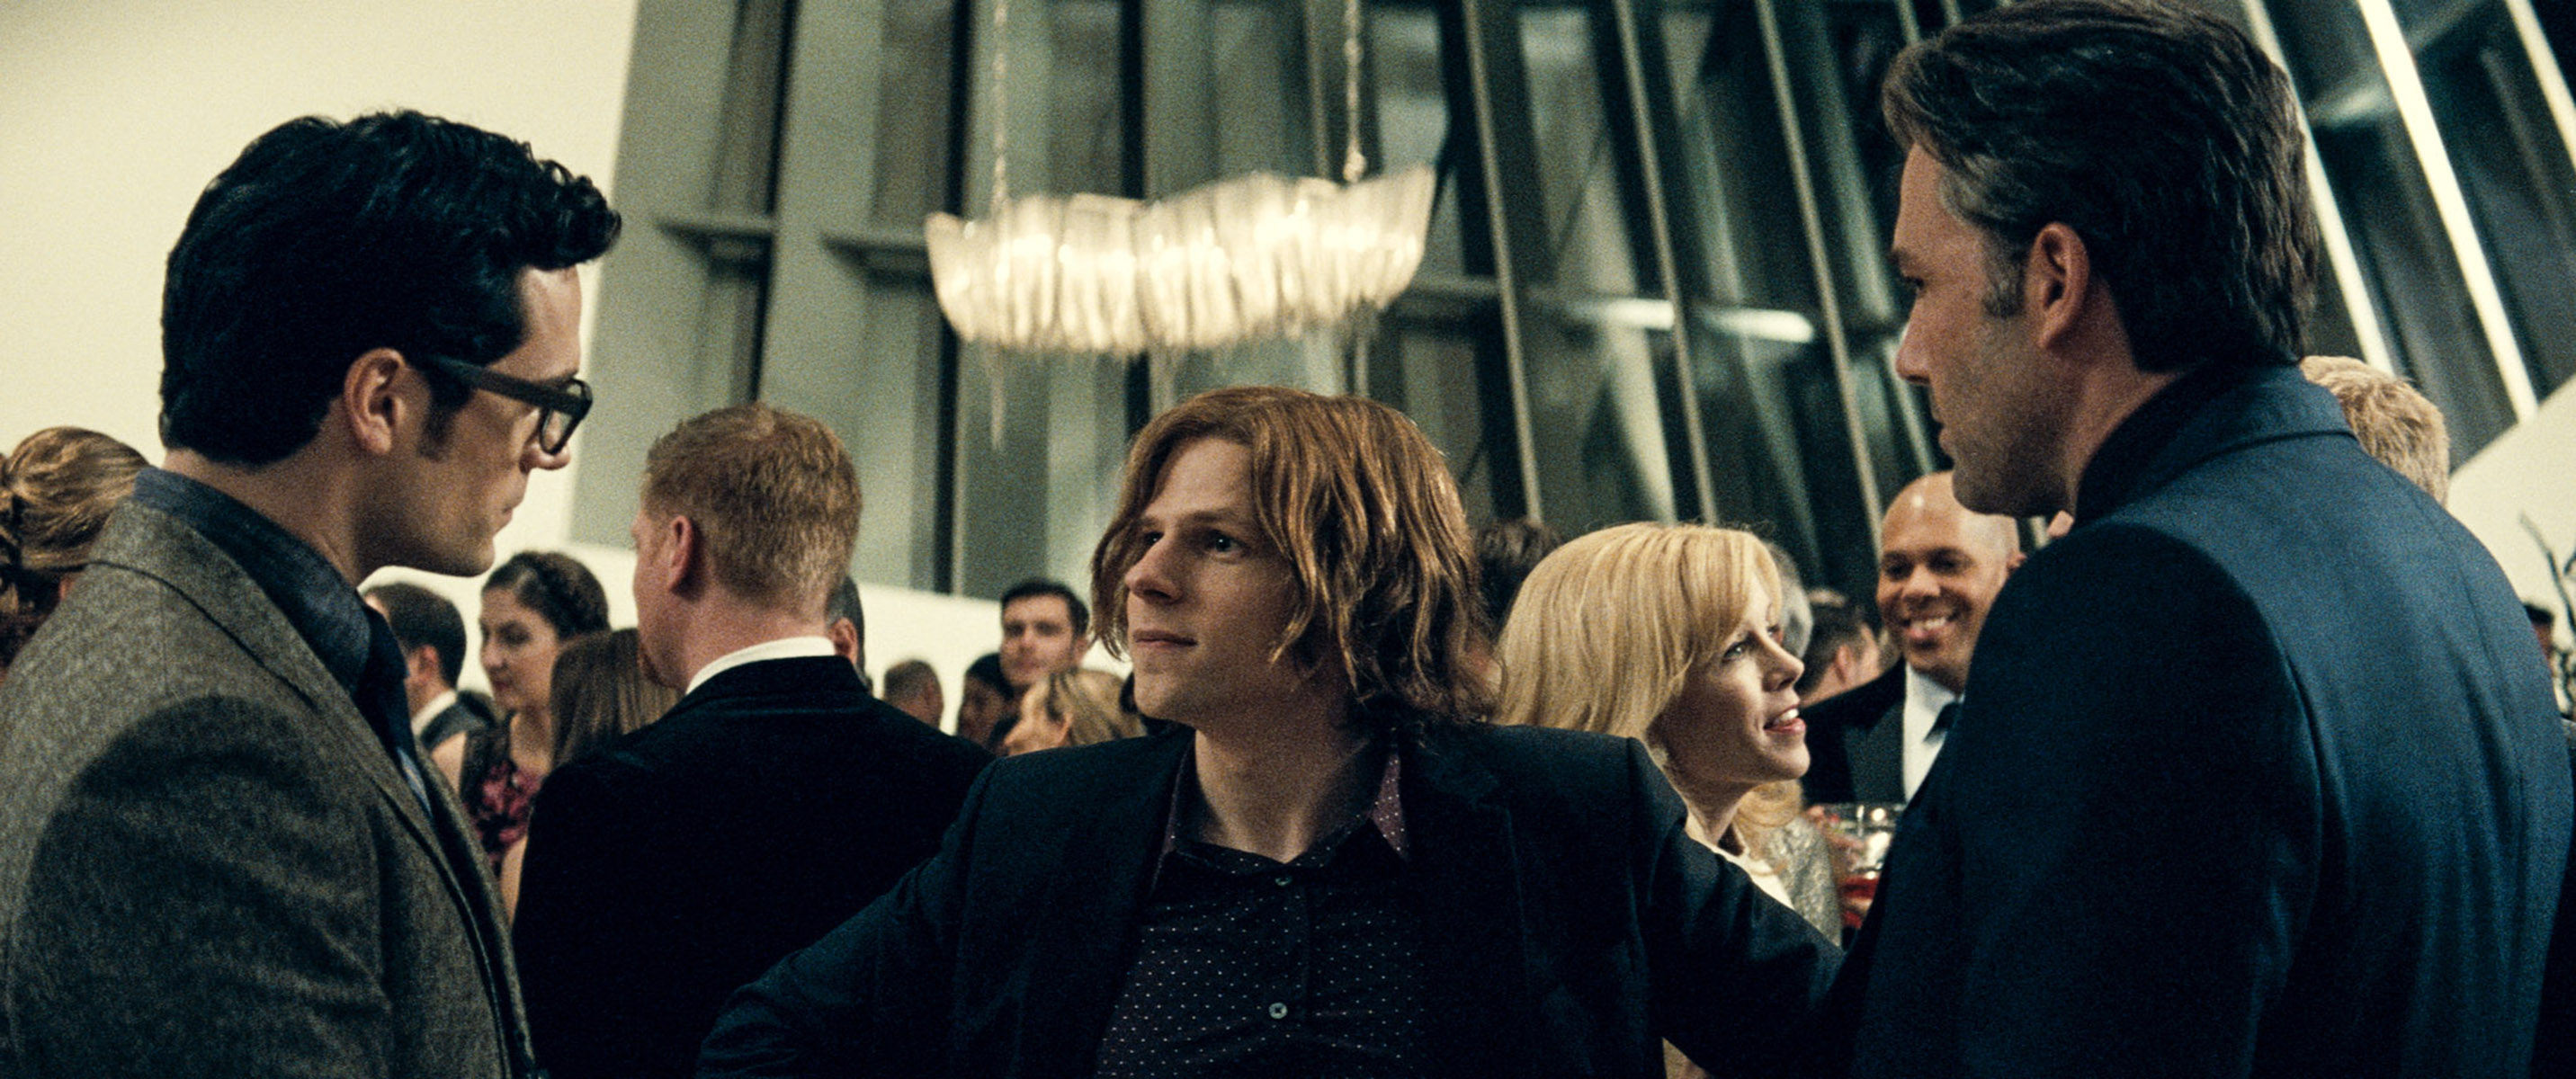 Jesse Eisenberg as Lex Luthor, center, in Batman v Superman: Dawn of Justice. Warner Bros.